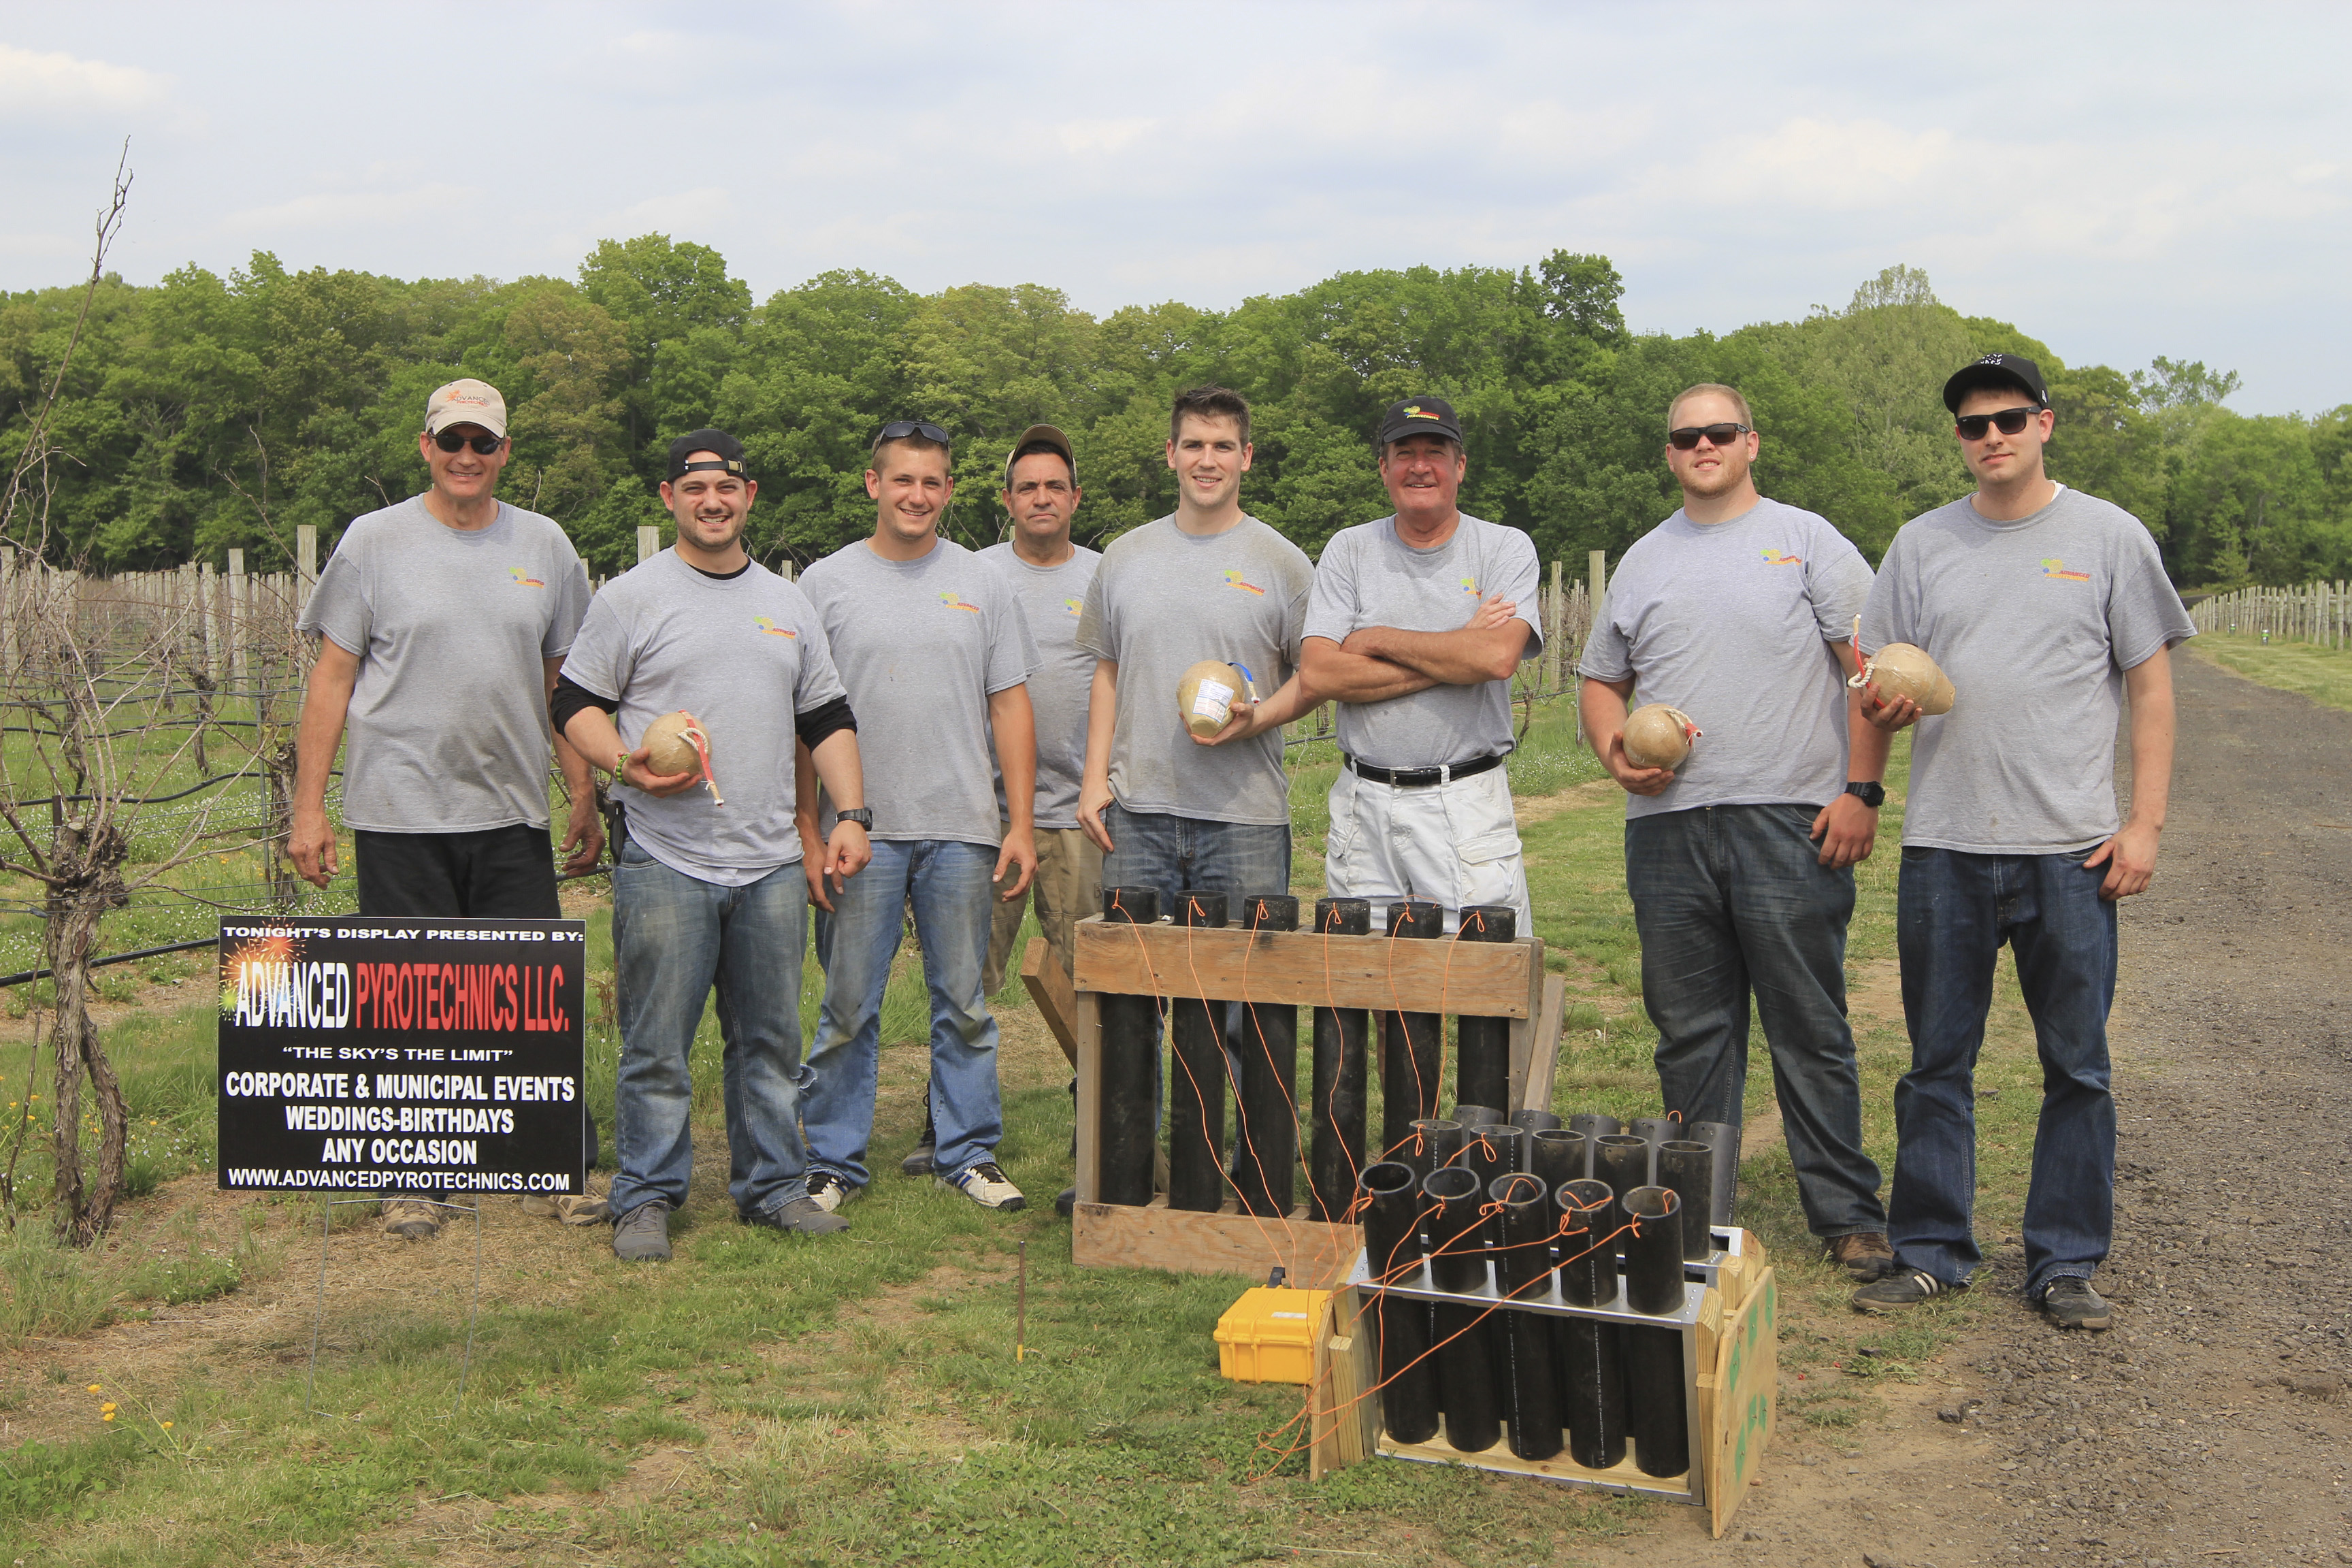 The crew of a New Jersey fireworks company sets up for a PA wedding fireworks show.